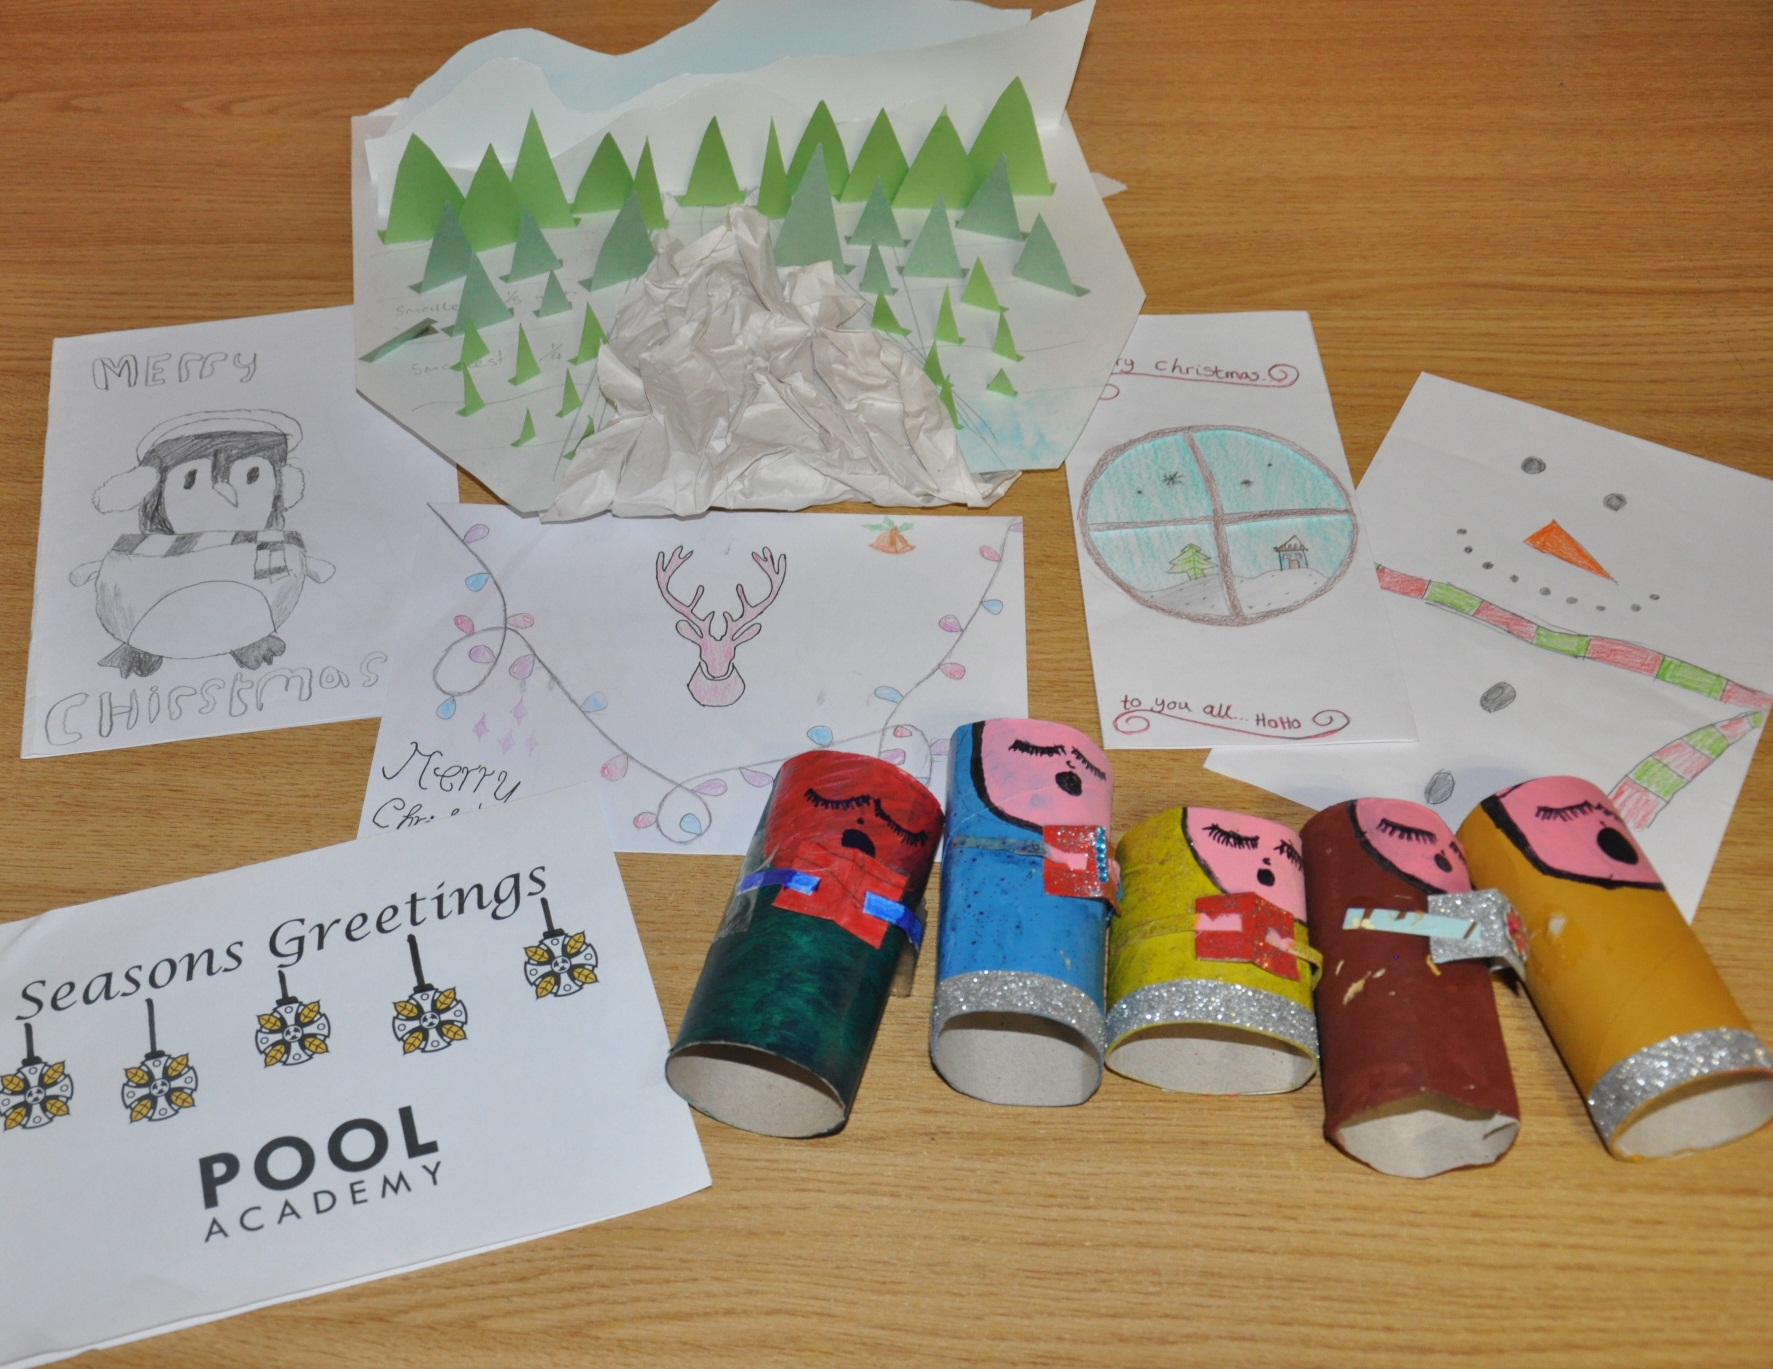 Some of the entries already handed in for the competition